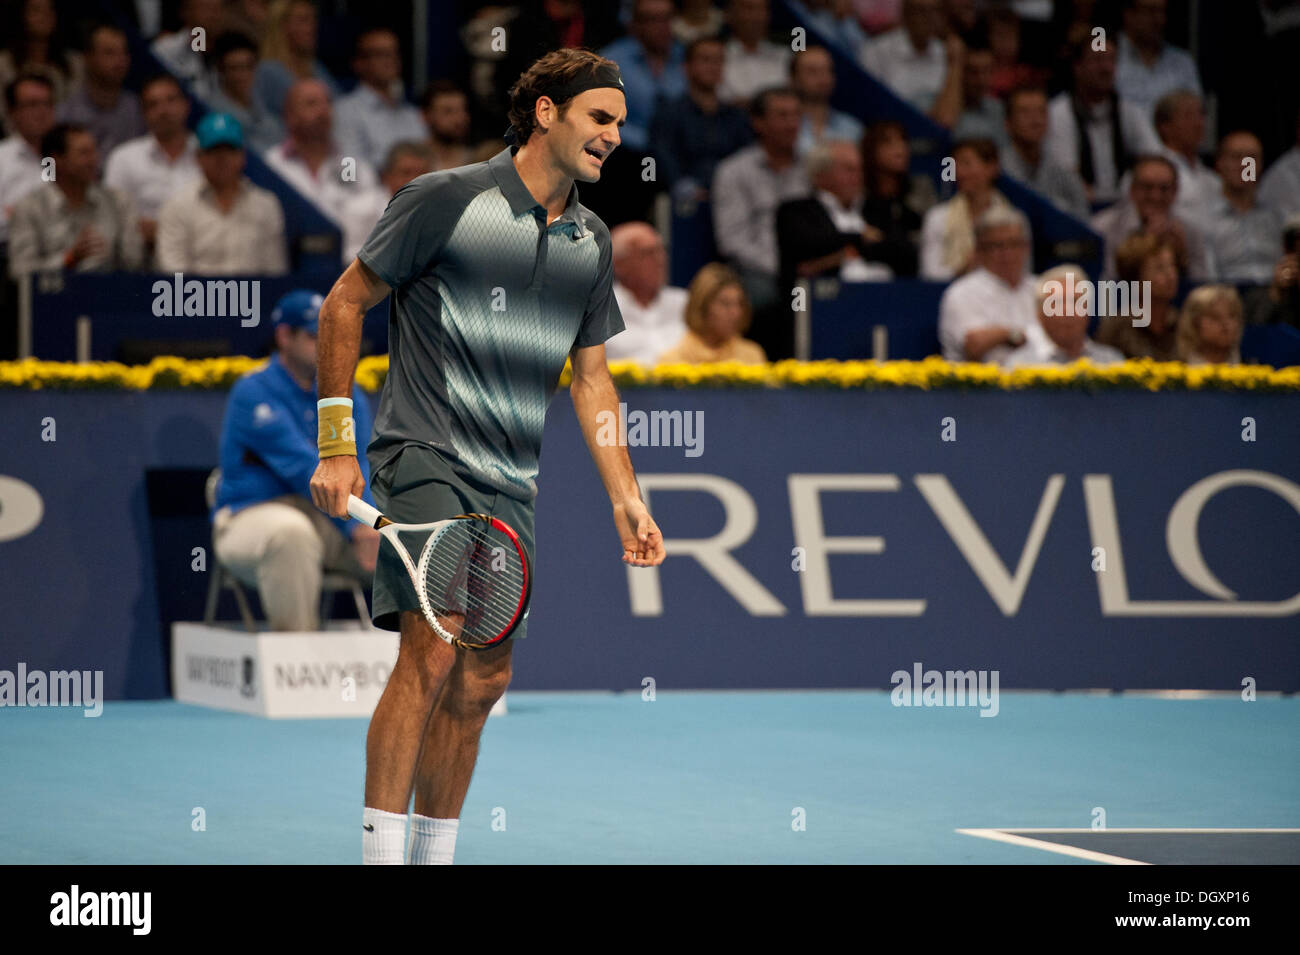 Basel, Switzerland. 27th Oct, 2013. Roger Federer (SUI) yells out of frustration during the final of the Swiss Indoors at St. Jakobshalle on Sunday. Photo: Miroslav Dakov/ Alamy Live News - Stock Image